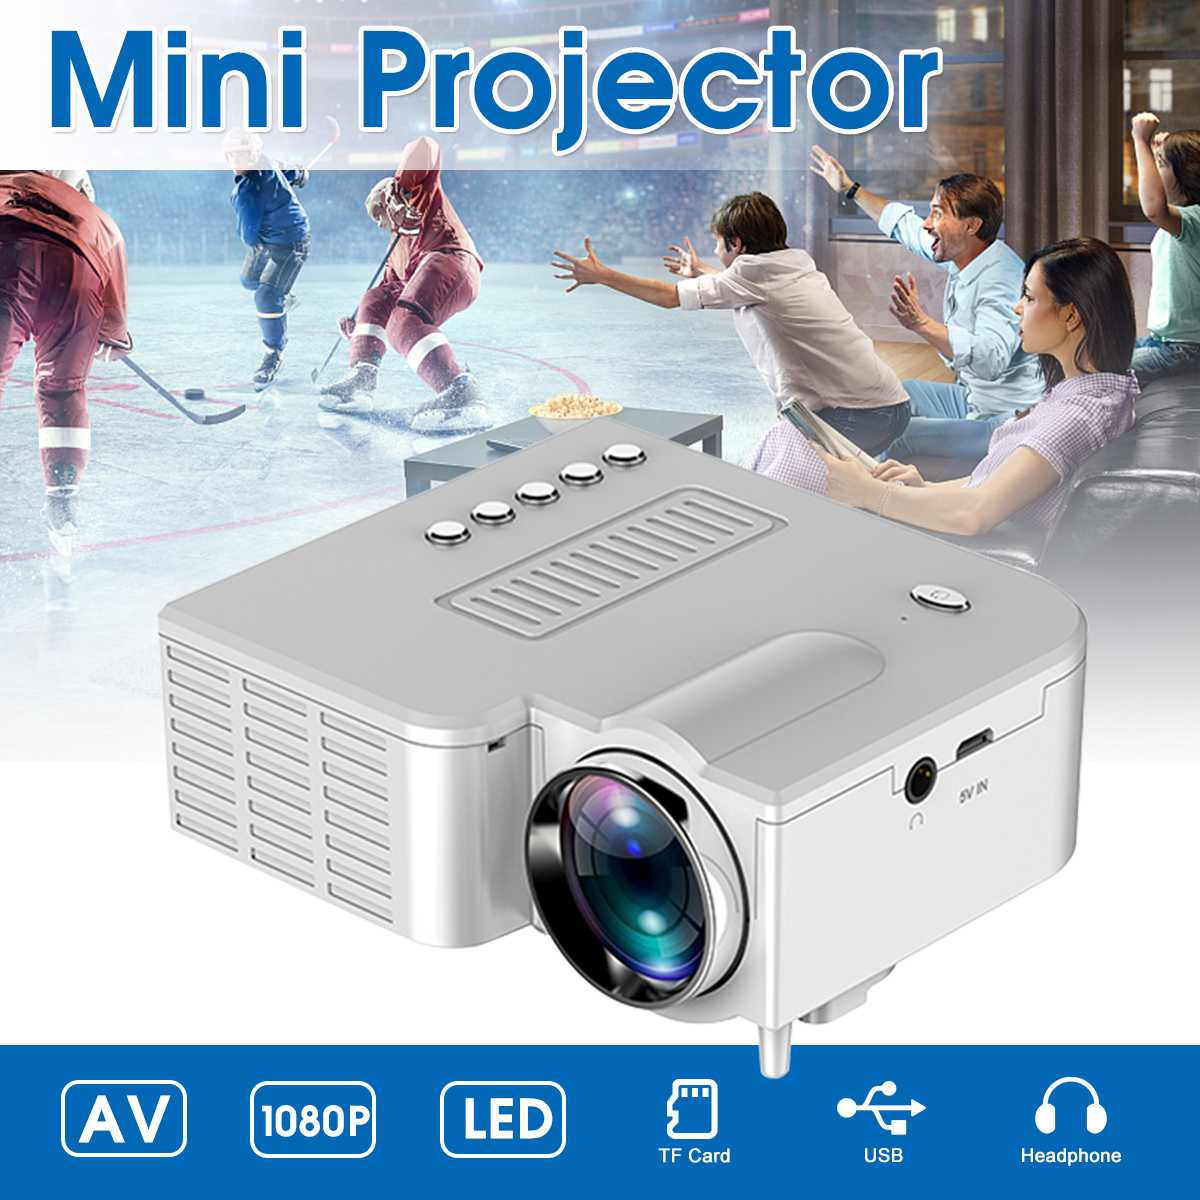 UNIC UC28 1080P Home Cinema Movie Video Projector <font><b>LED</b></font> Mini Projector Video Beamer Support 4K Video U Disk TF Card STB image